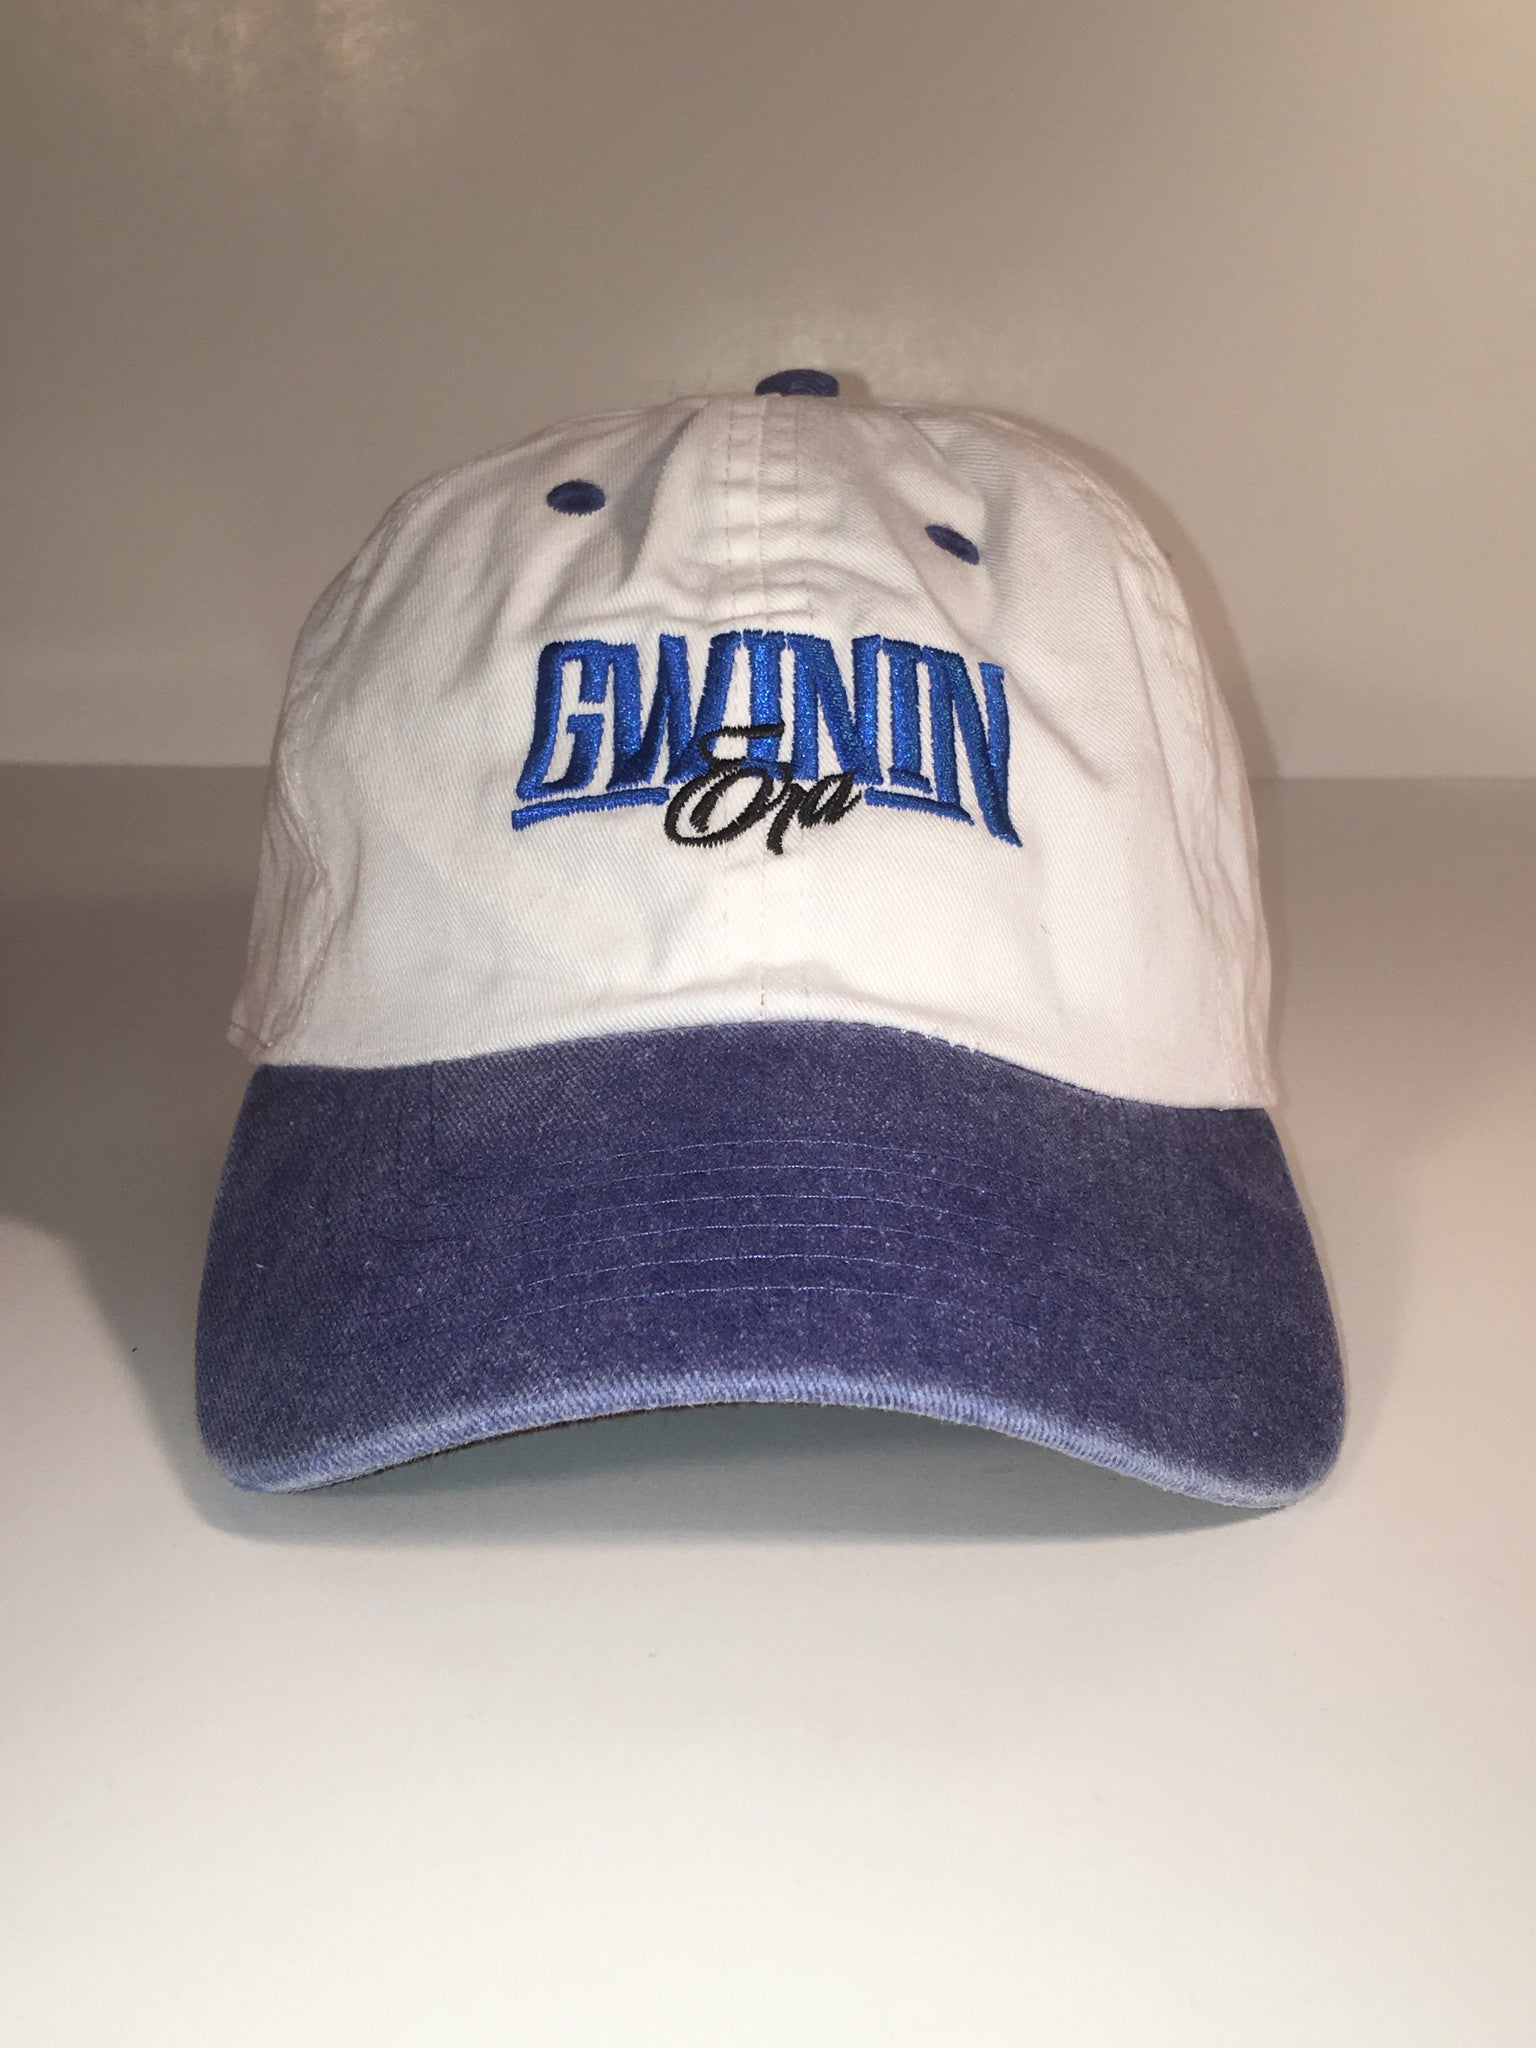 Blue/White Gwinin Era Signiture Cap